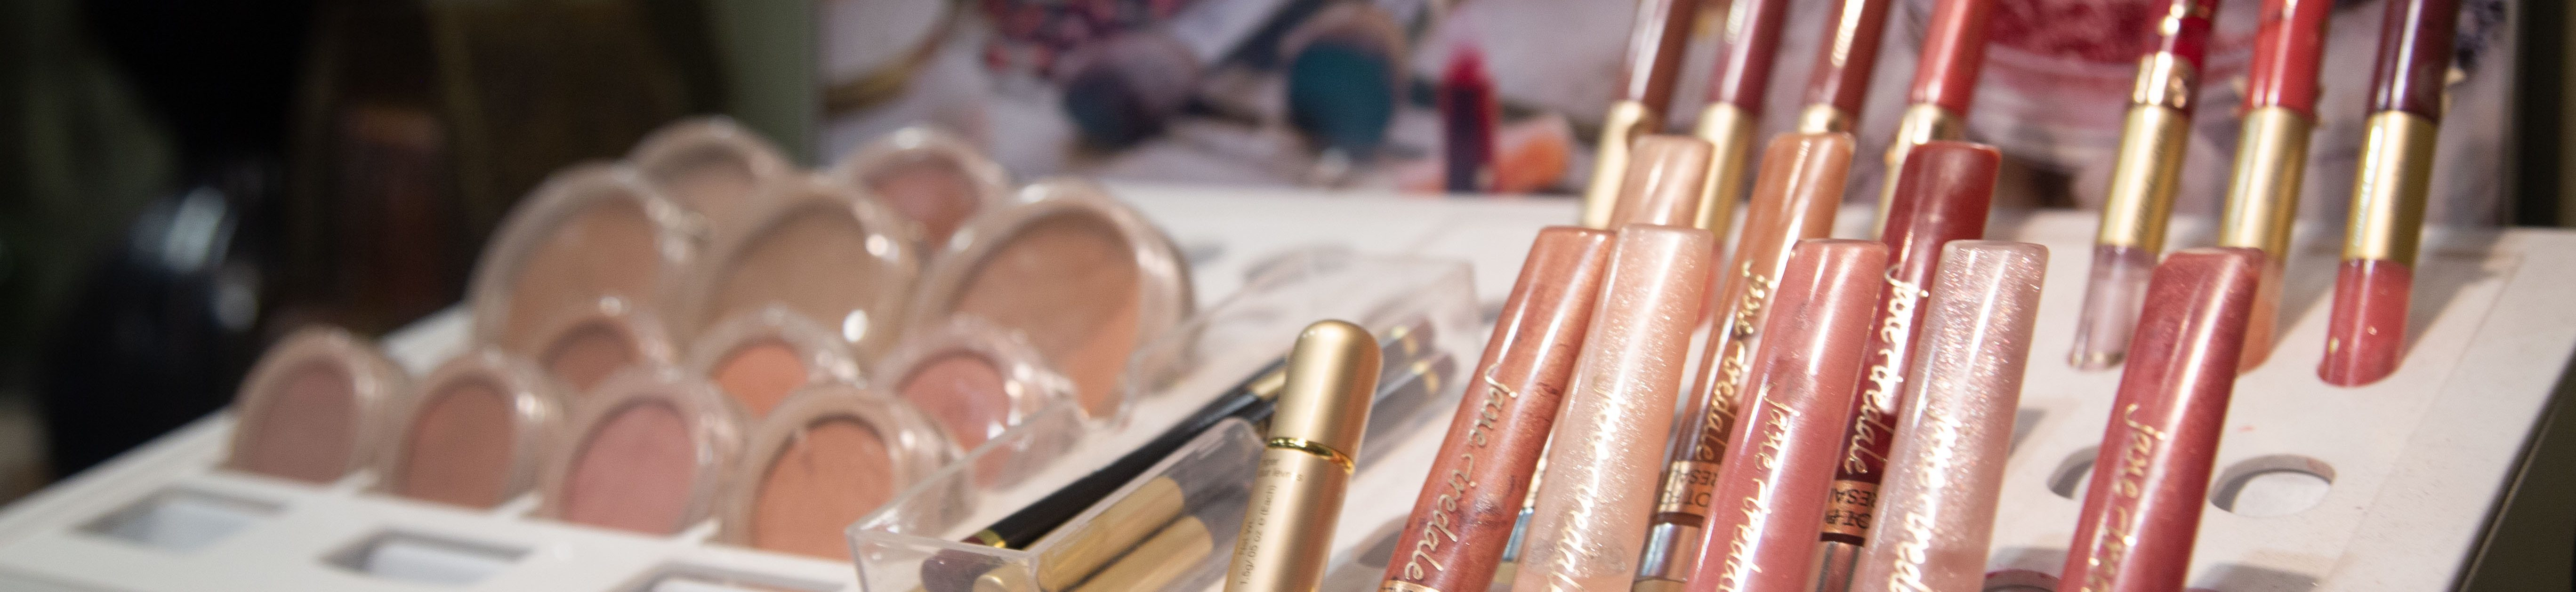 Makeup Services Jane Iredale Lemongrass Day Spa